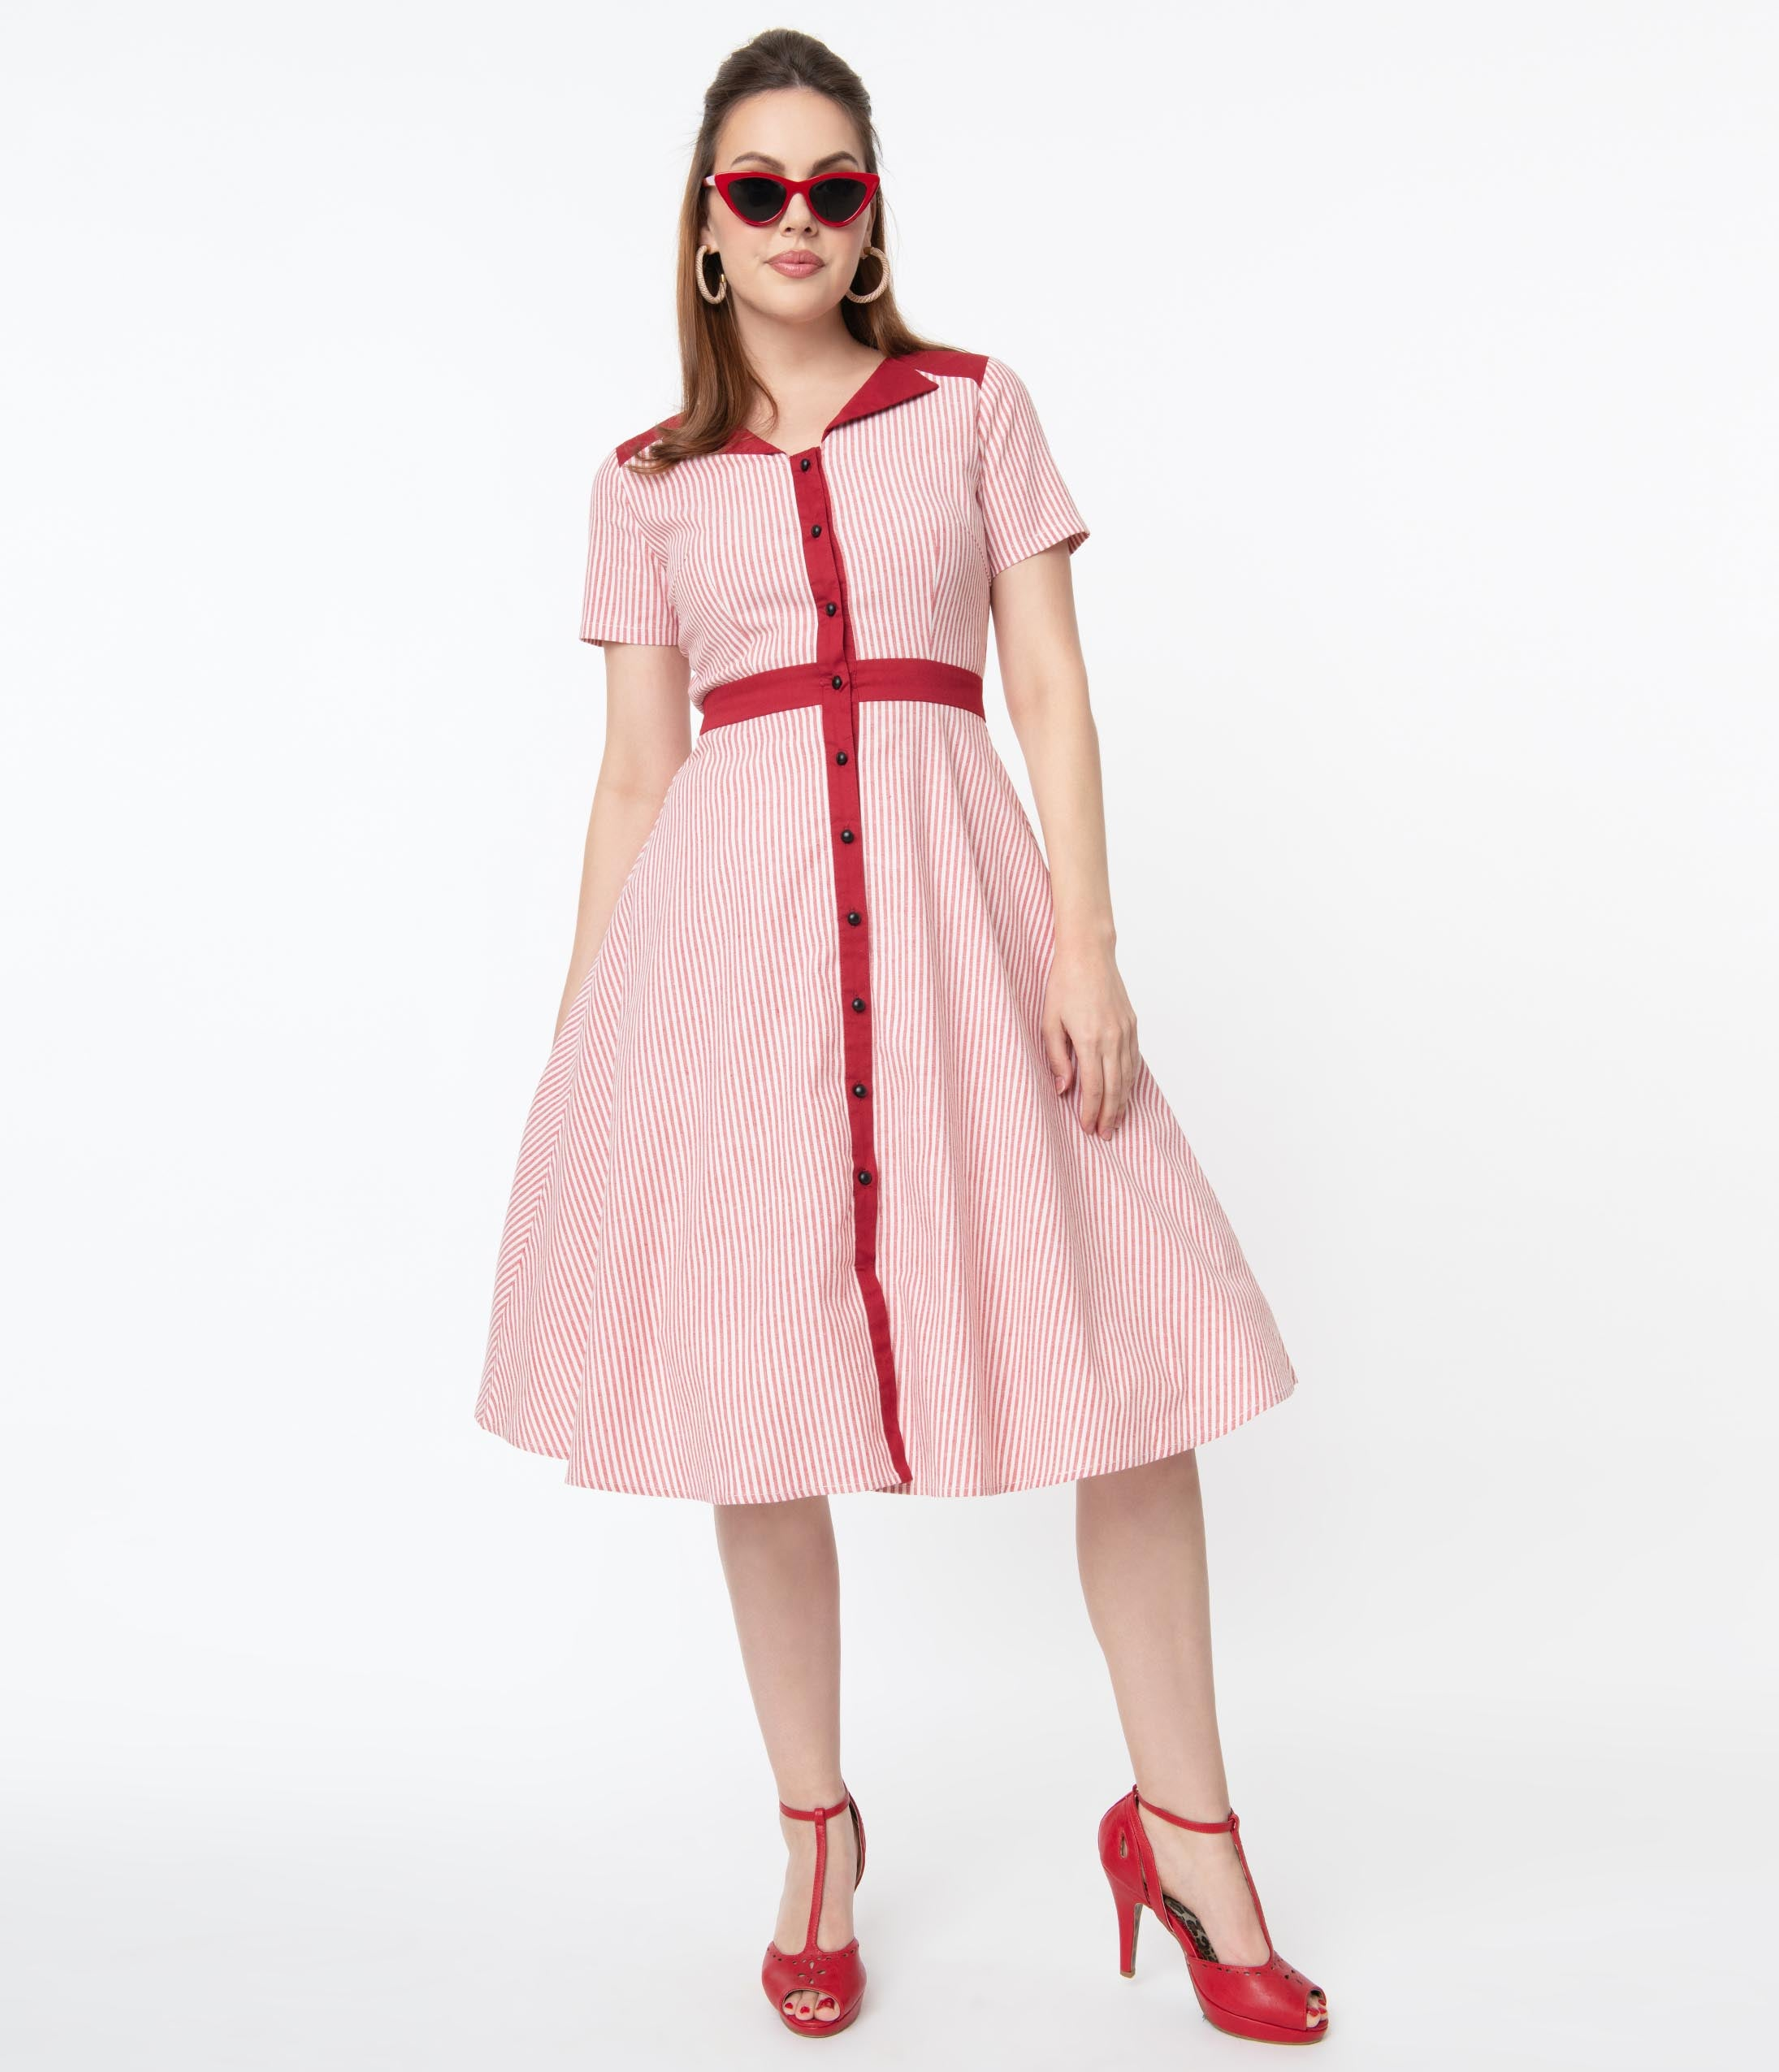 Pin Up Dresses | Pinup Clothing & Fashion Magnolia Place 1950S Style Red  White Stripe Button Up Swing Dress $78.00 AT vintagedancer.com